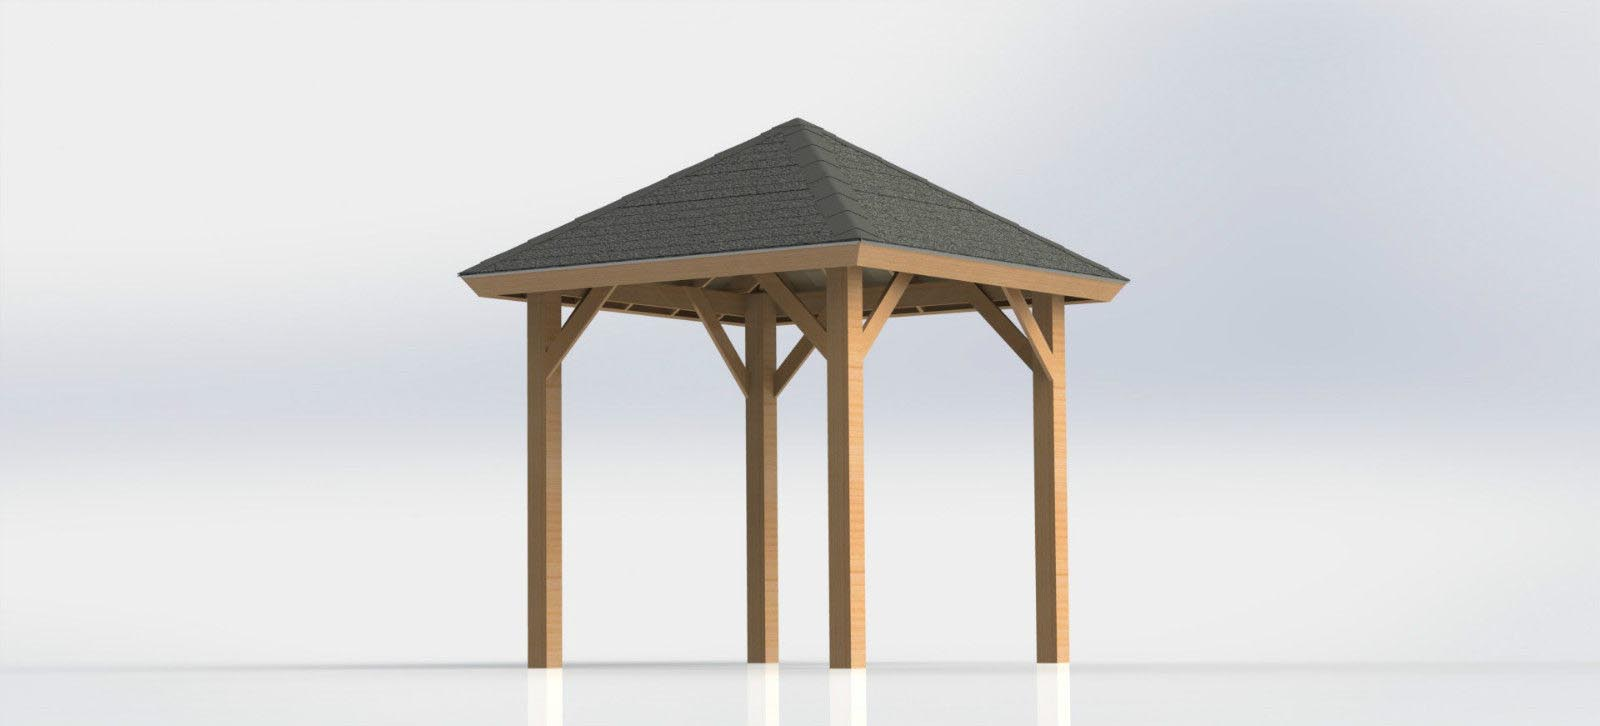 Do It Yourself Home Design: Free Square Gazebo Plans